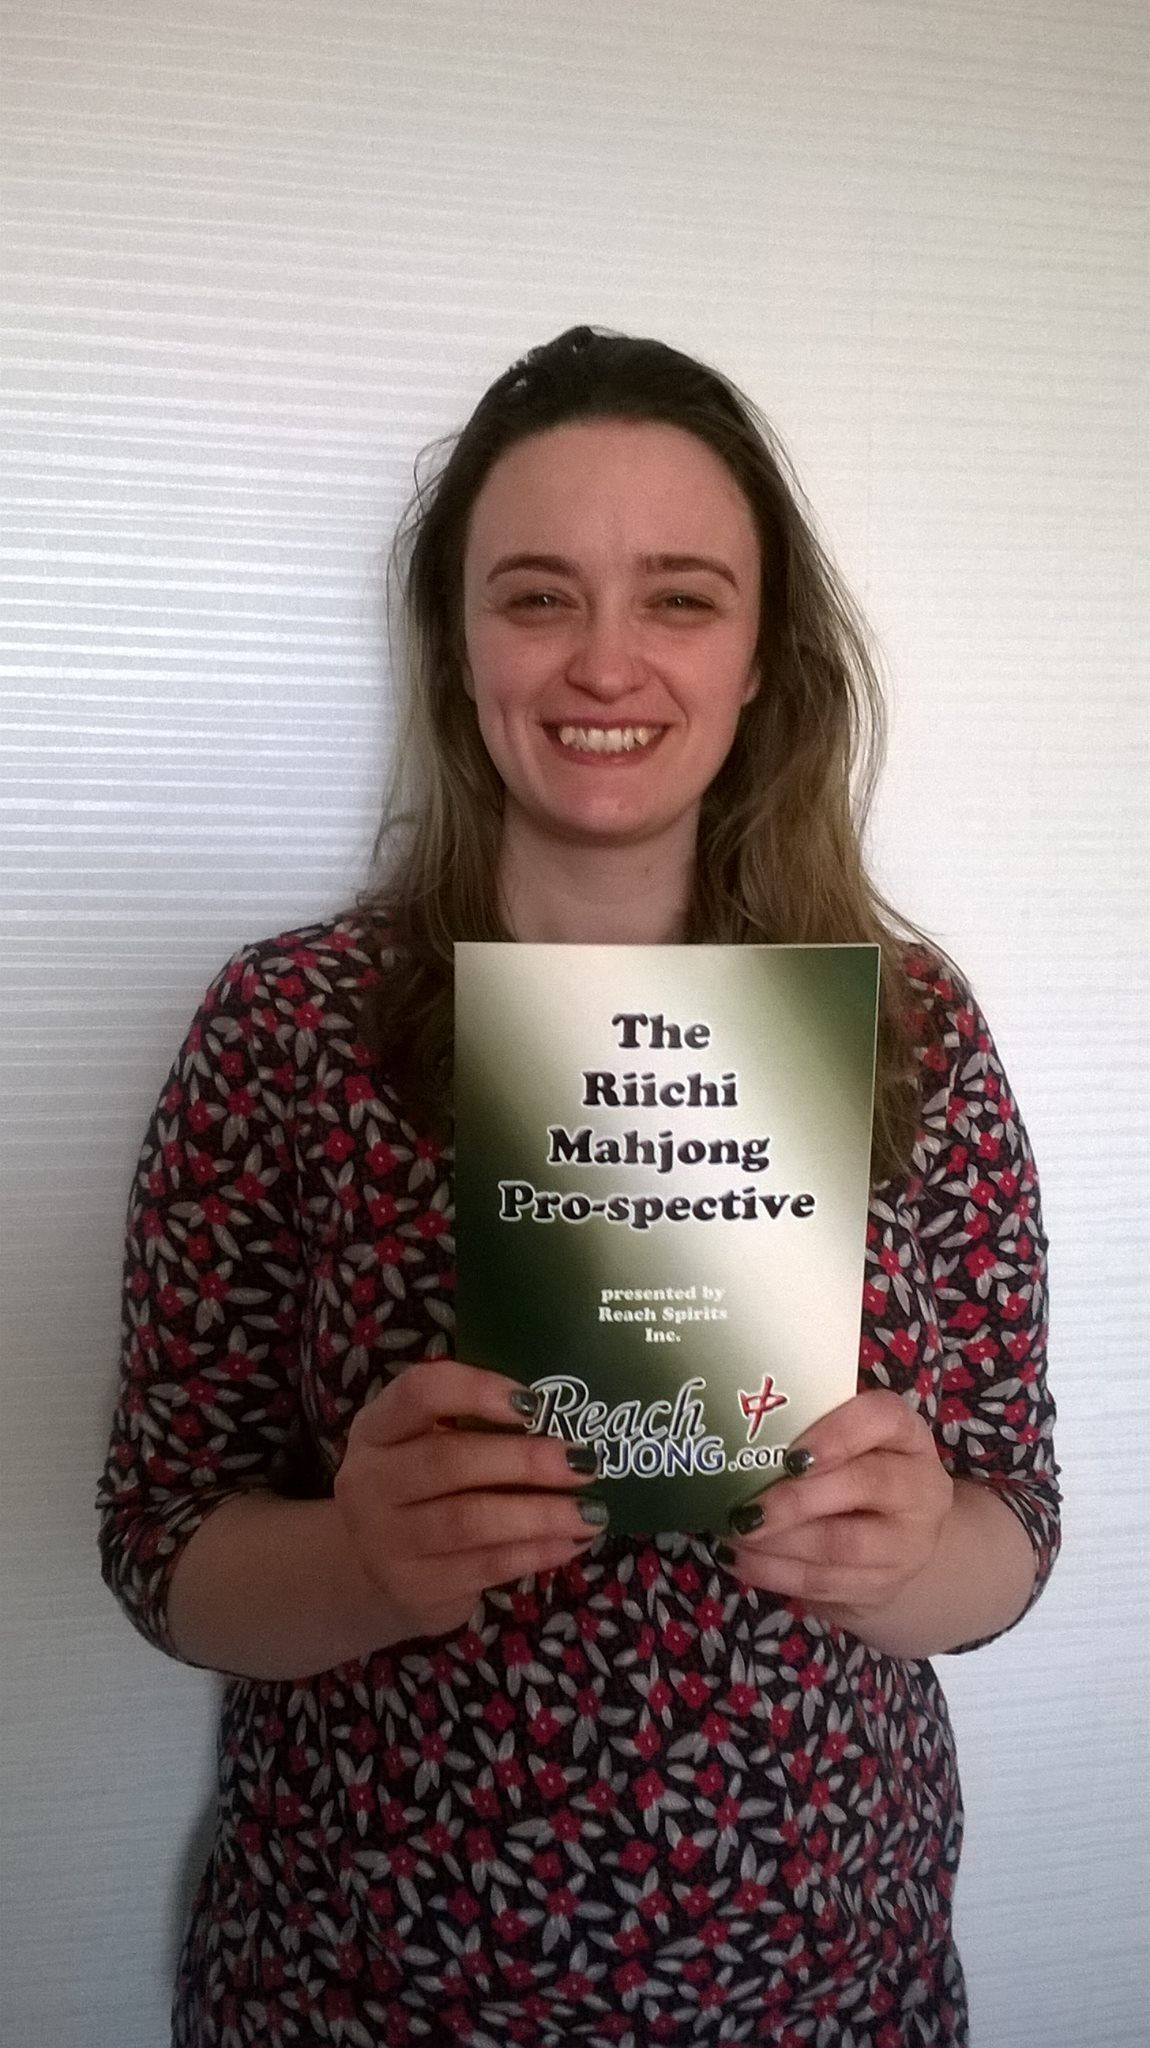 mahjong news new riichi book released a collection of essays by  mrs gemma sakamoto showing off the brand new book